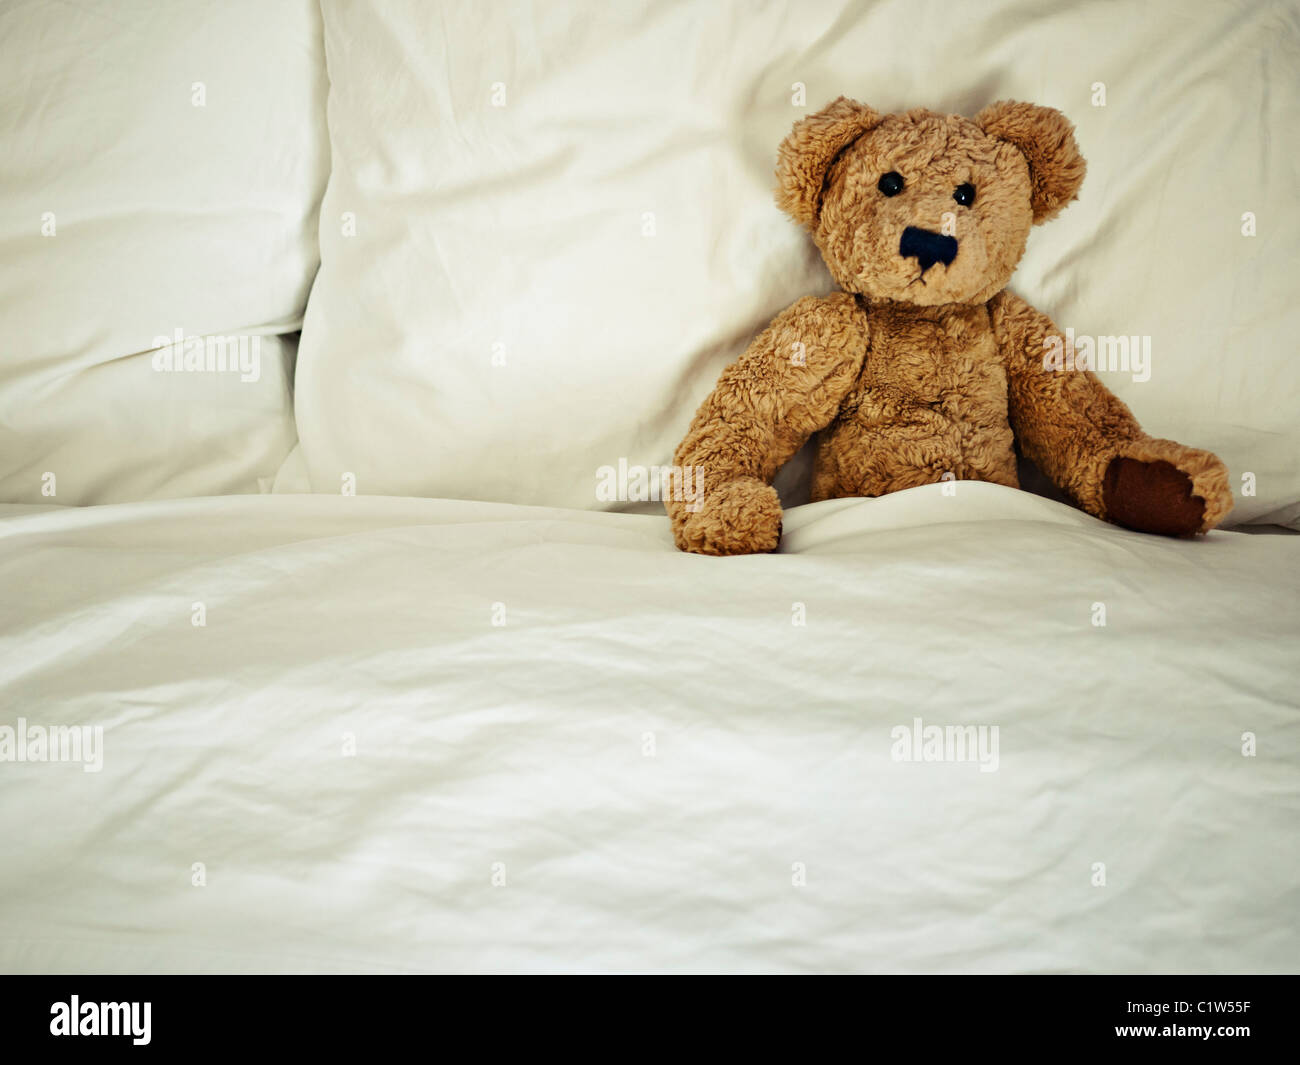 Teddy Bear In Bed Stock Photo Royalty Free Image